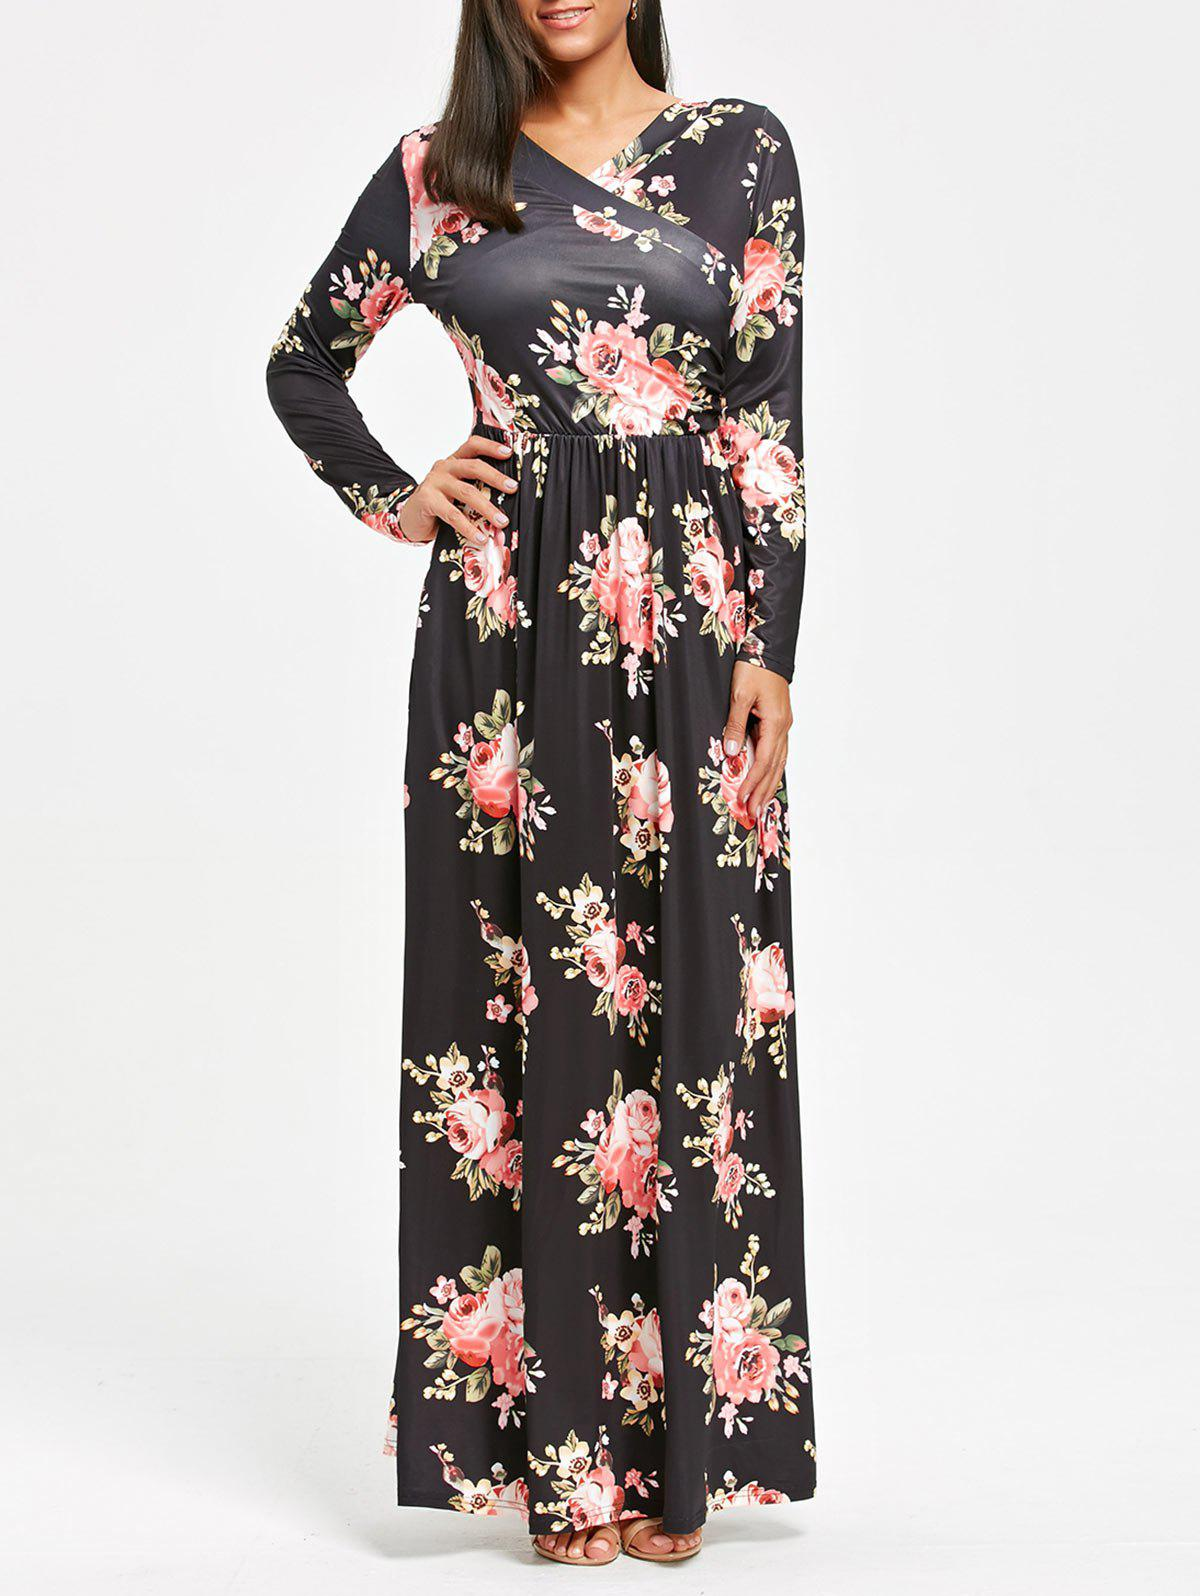 High Waist Floral Printed Long Sleeve Maxi Dress long sleeve high waist printed dress